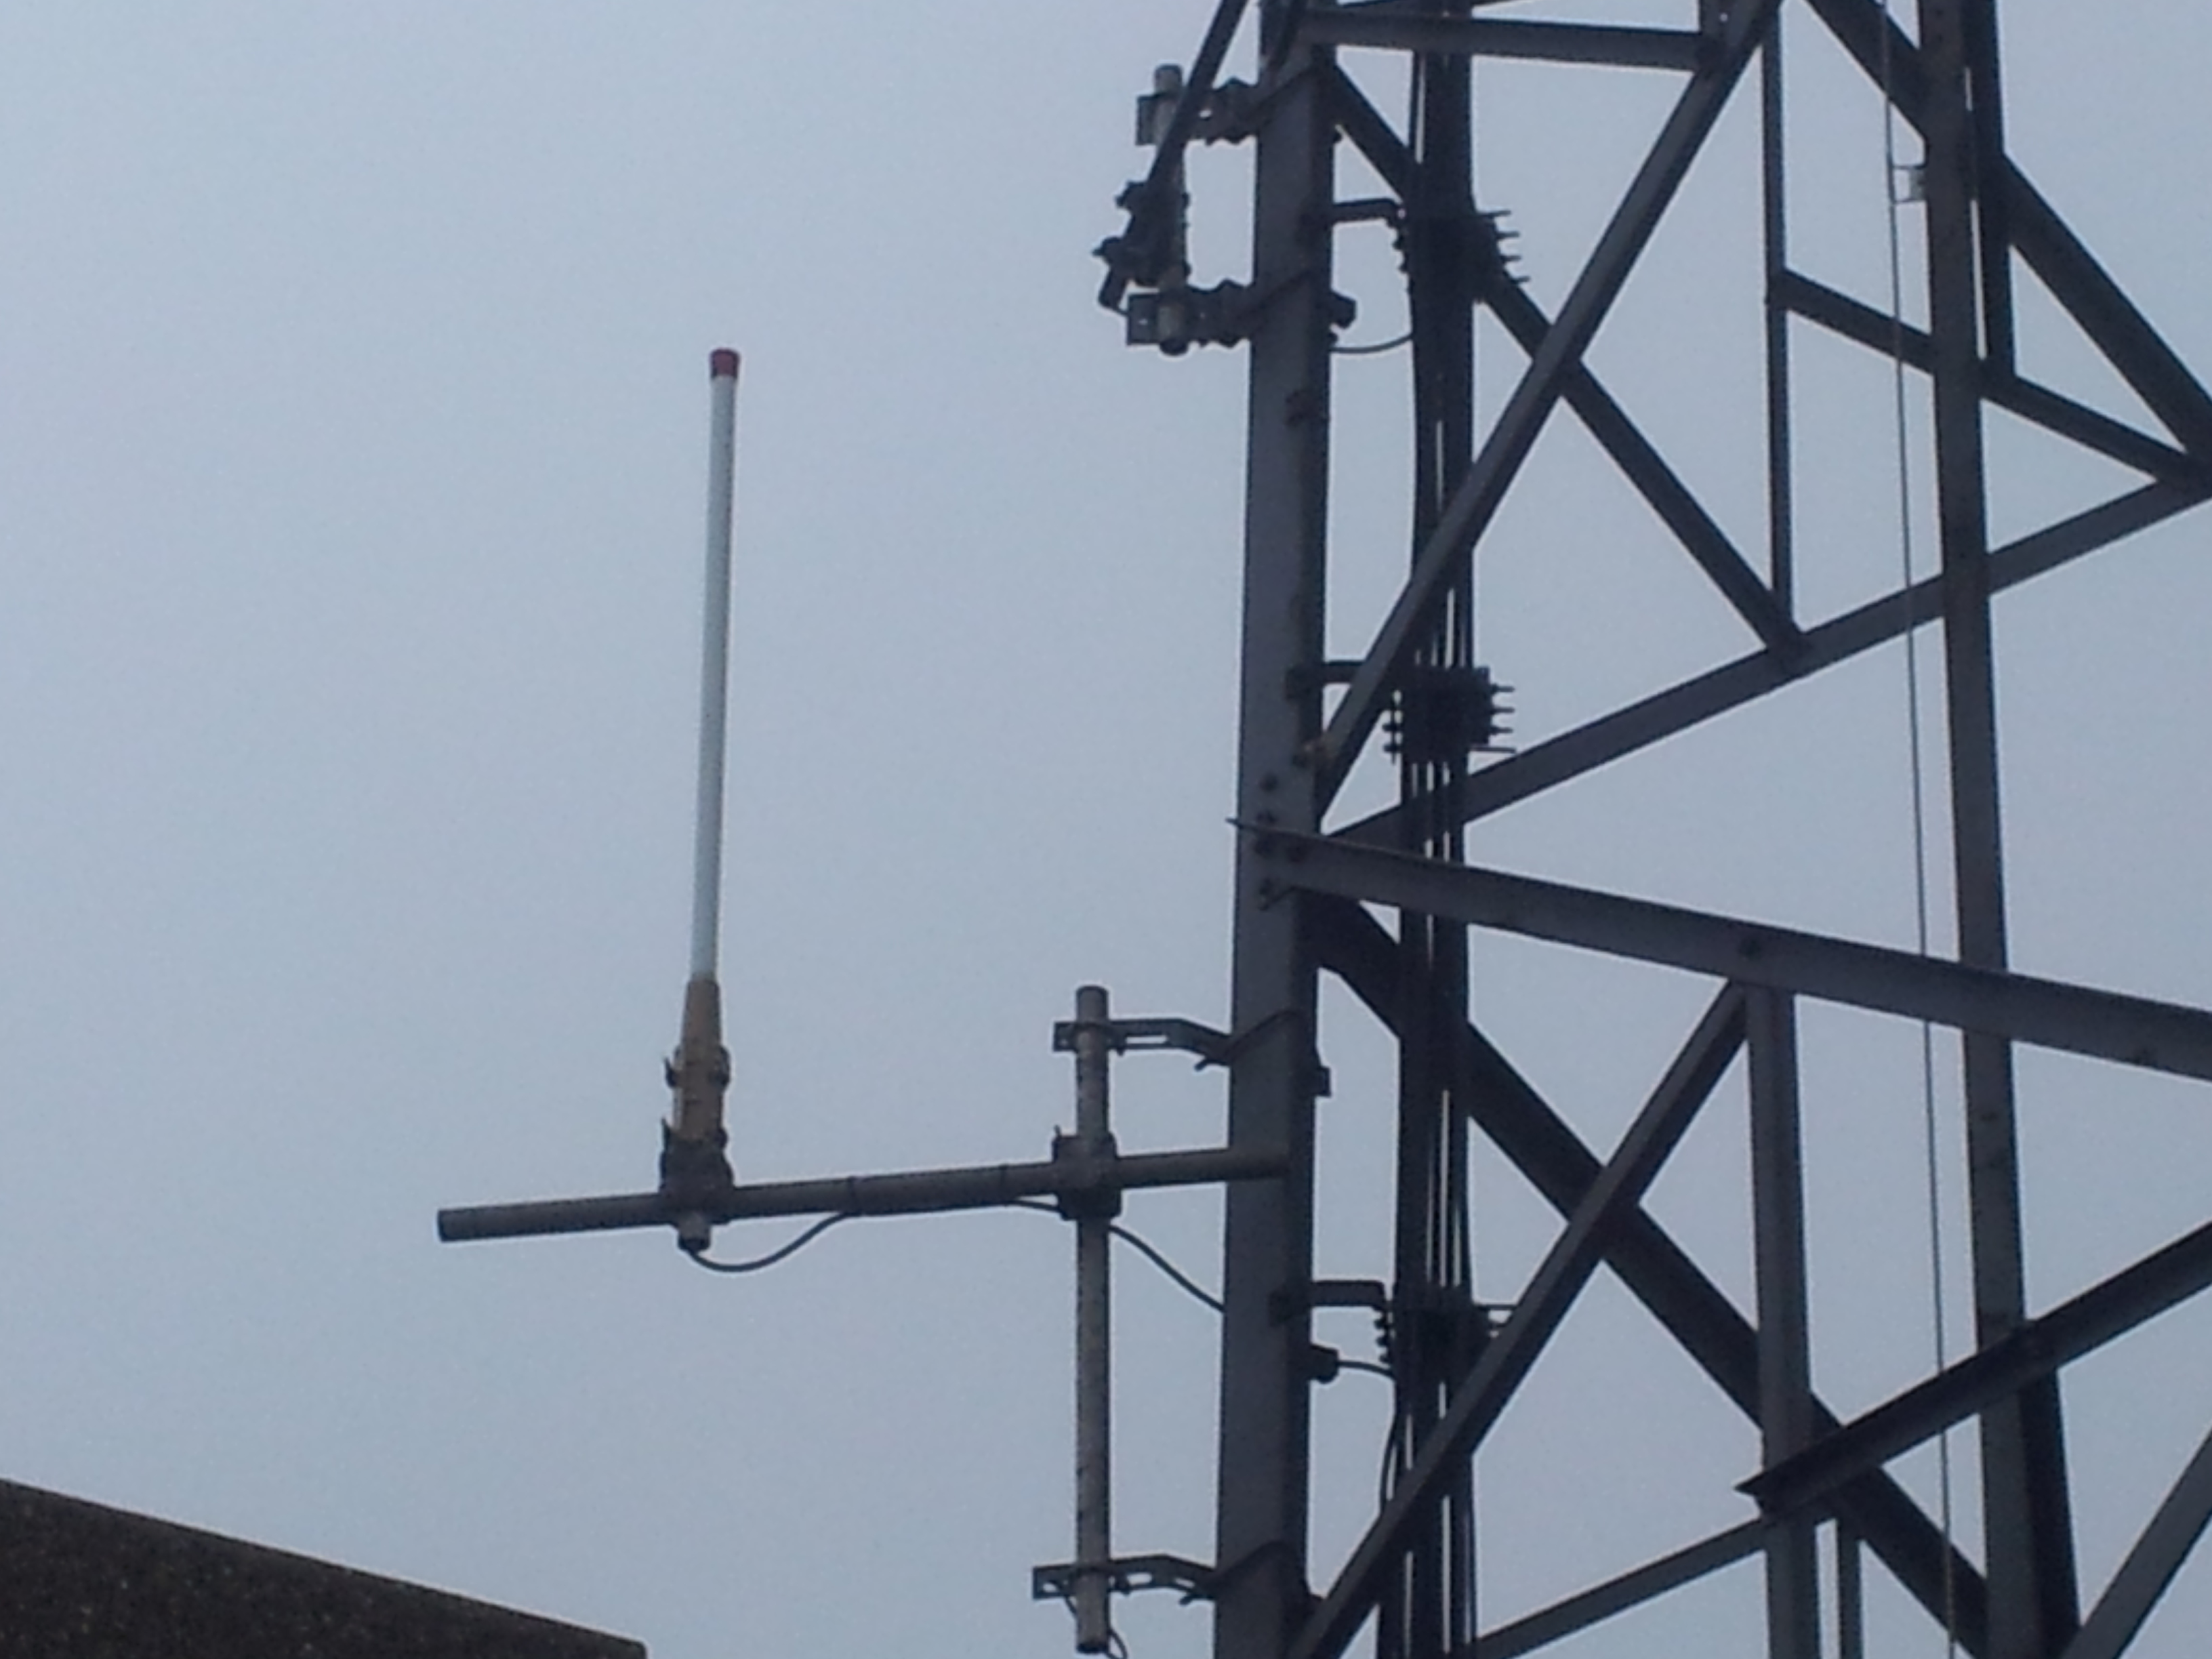 Snaefell Antenna March 2014